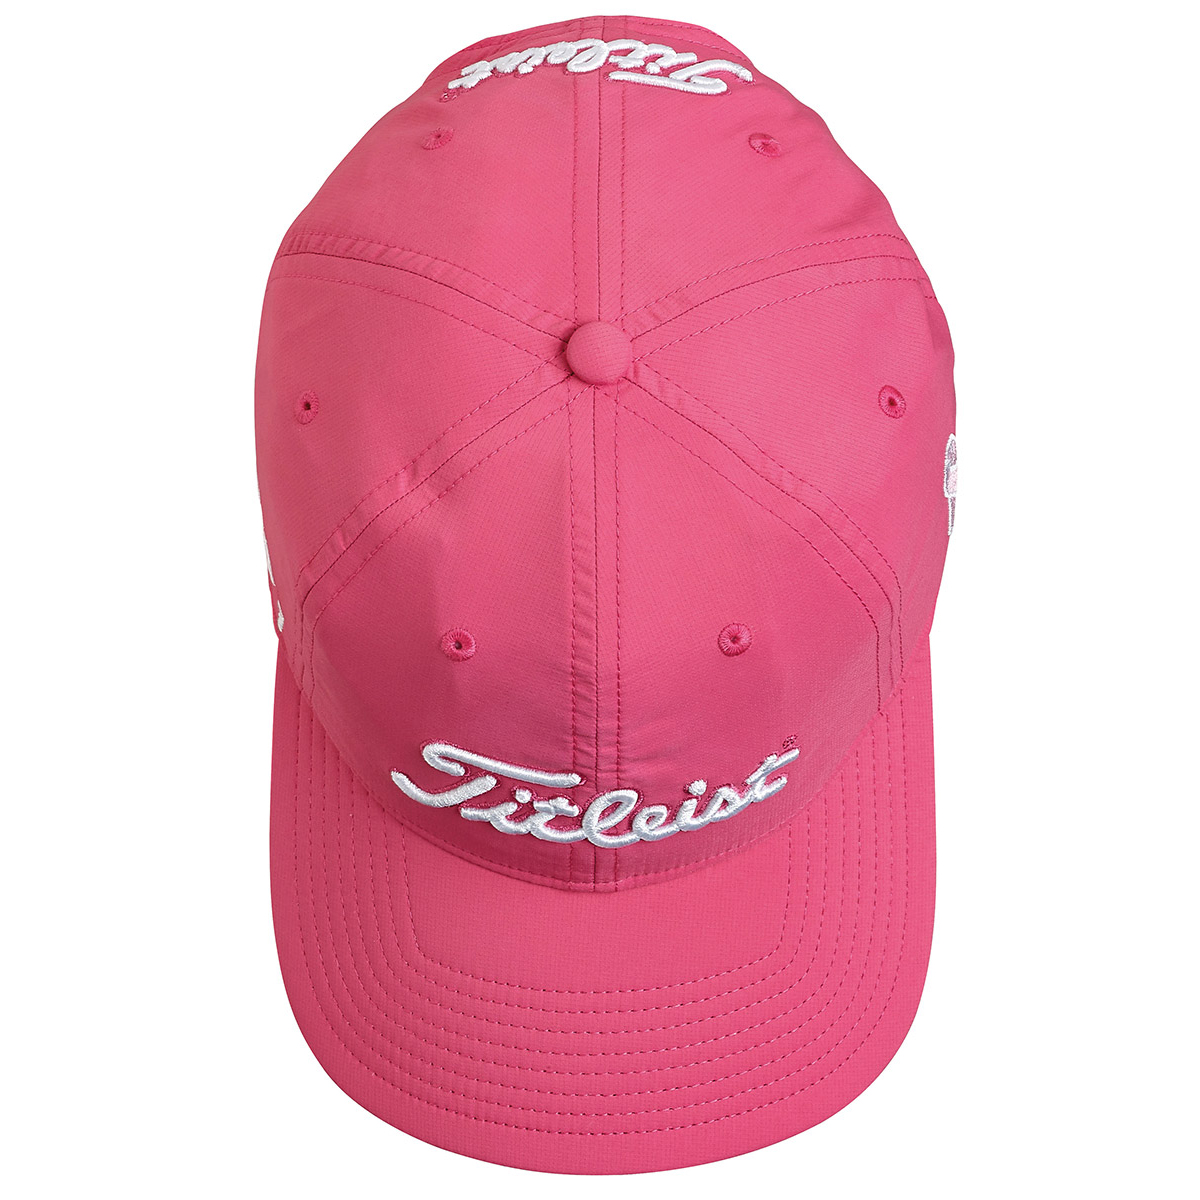 Titleist Pink Ribbon Ladies Cap from american golf f0ace5d4046